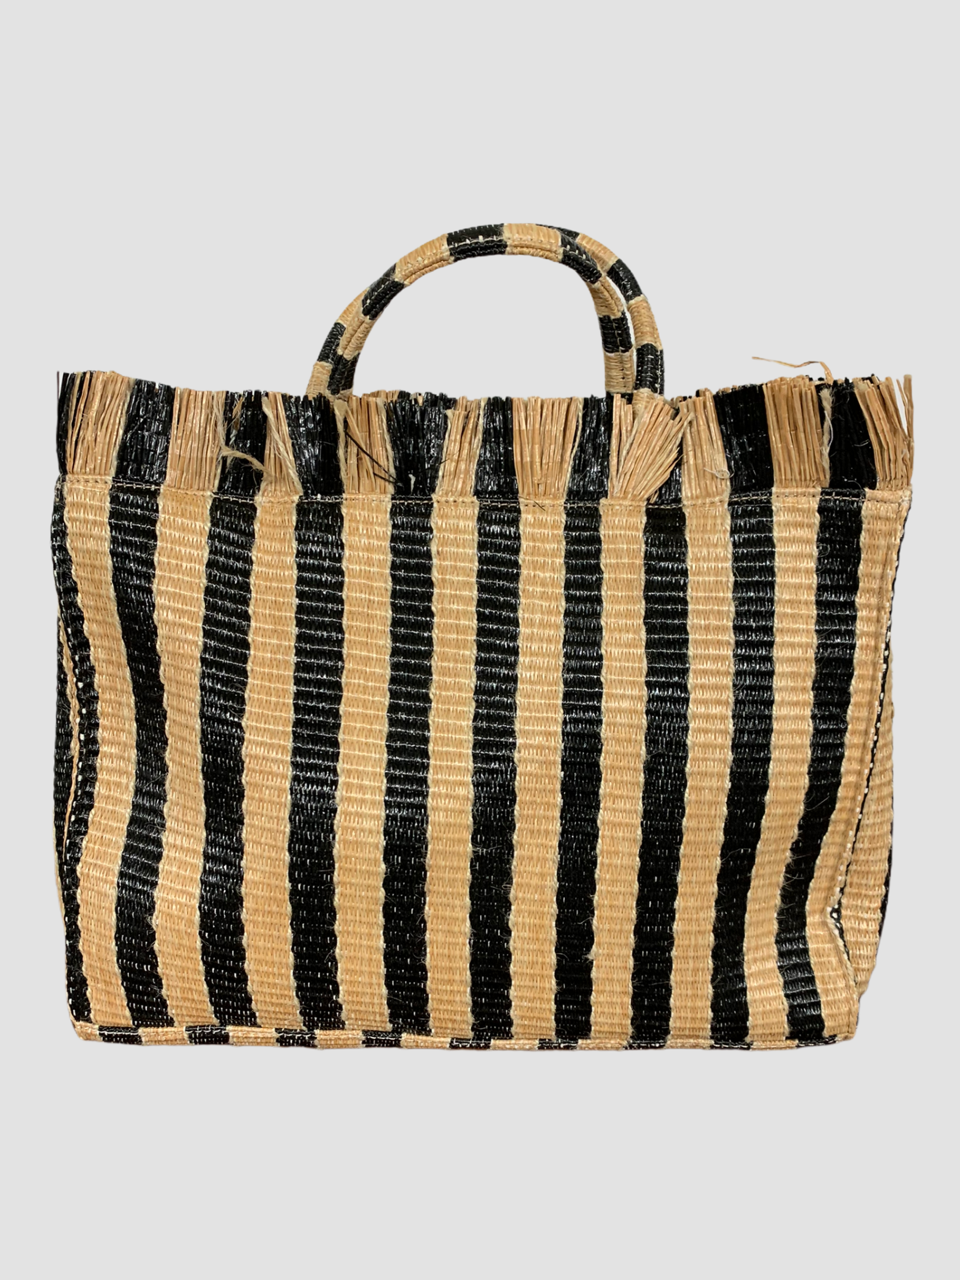 SHOPPING ON LINE PHO FIRENZE BORSA IN PAGLIA CON APPLICAZIONI REALIZZATE A MANO NEW COLLECTION WOMEN'S SPRING SUMMER 2021